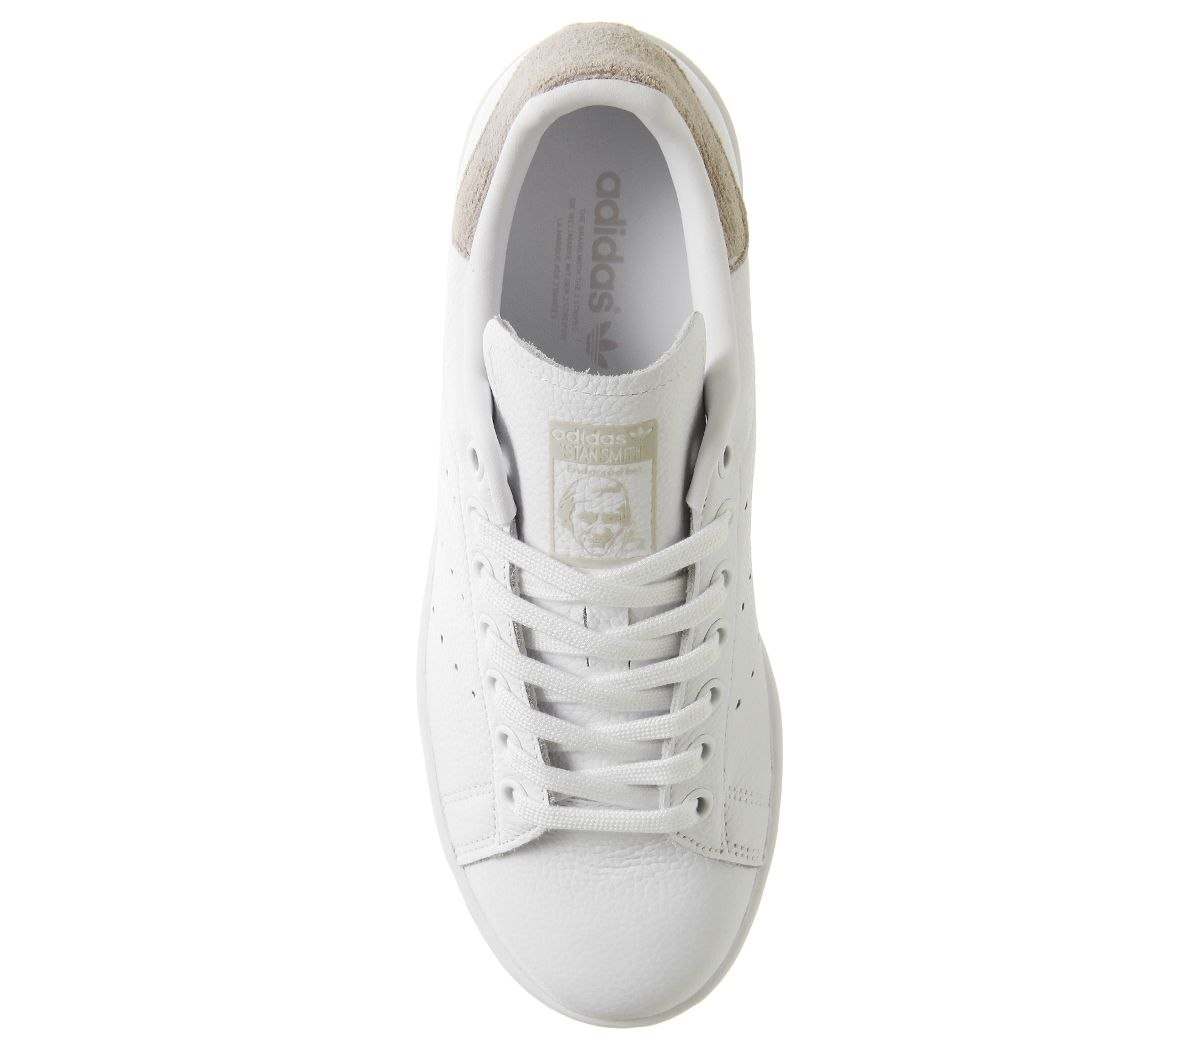 Short-Femme-Adidas-Stan-Smith-Baskets-White-Orchid-Tint-Baskets-Chaussures miniature 12